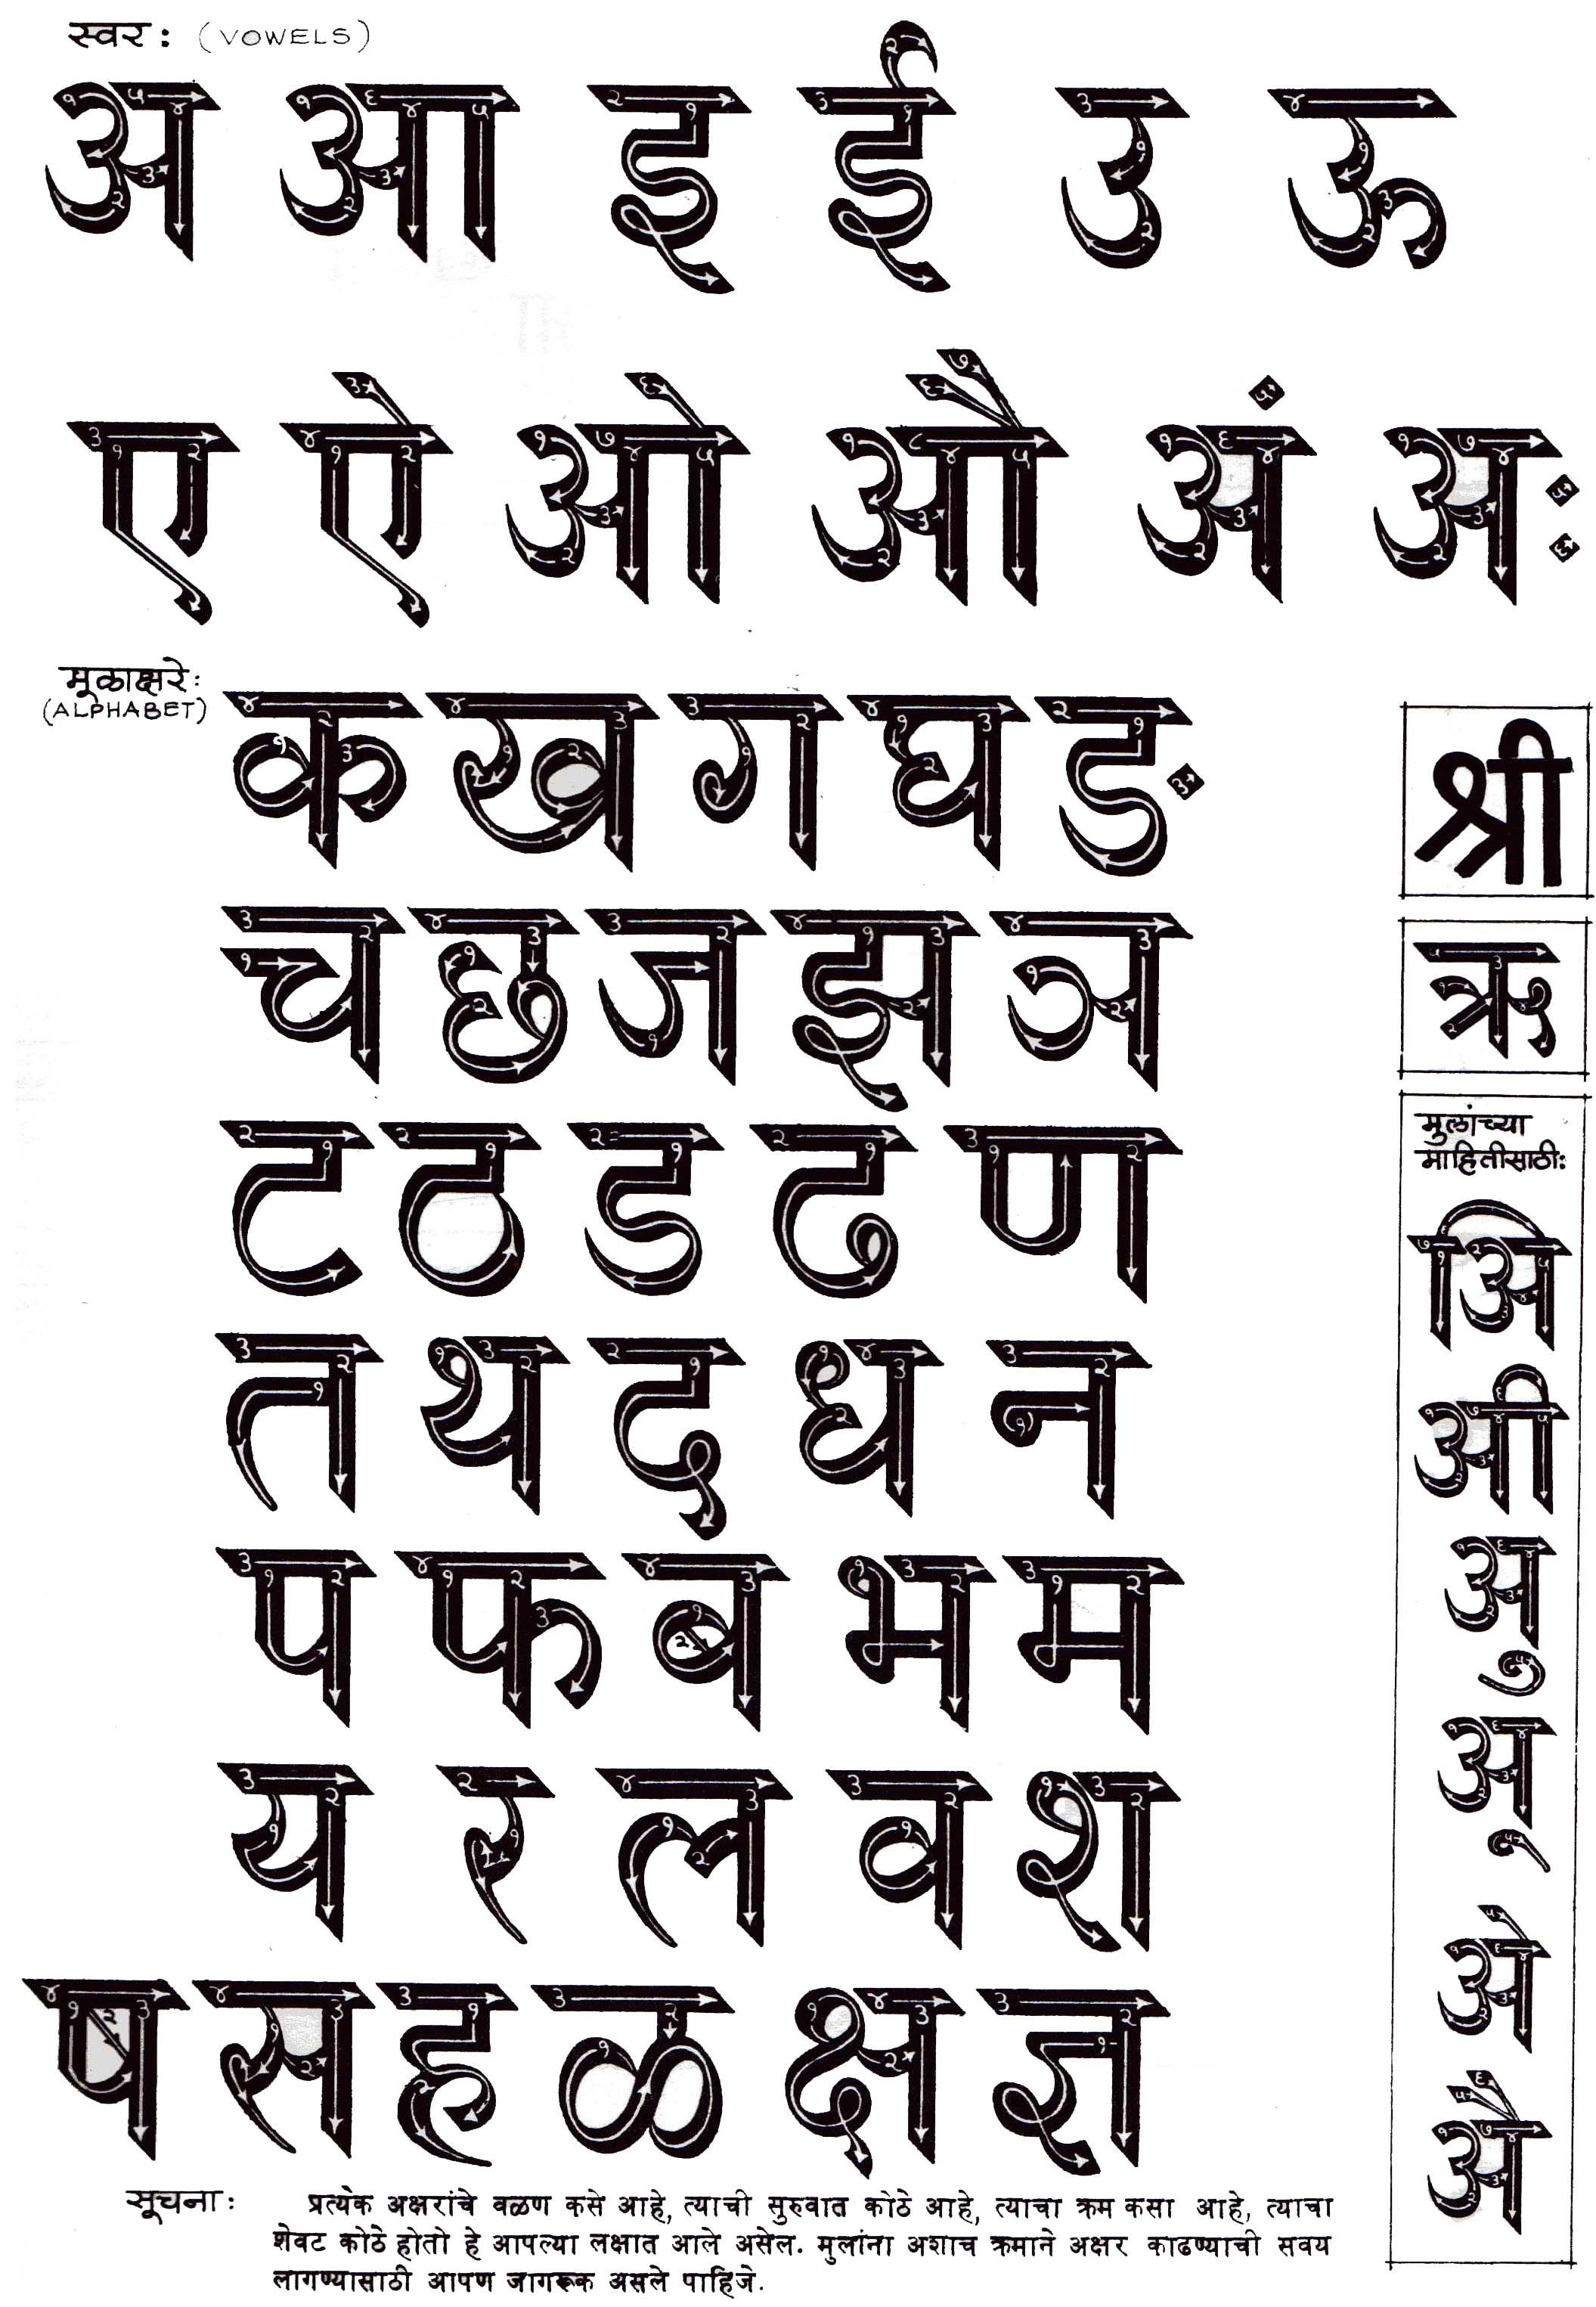 Useful Information About The Hindi Alphabet Or Devanagari